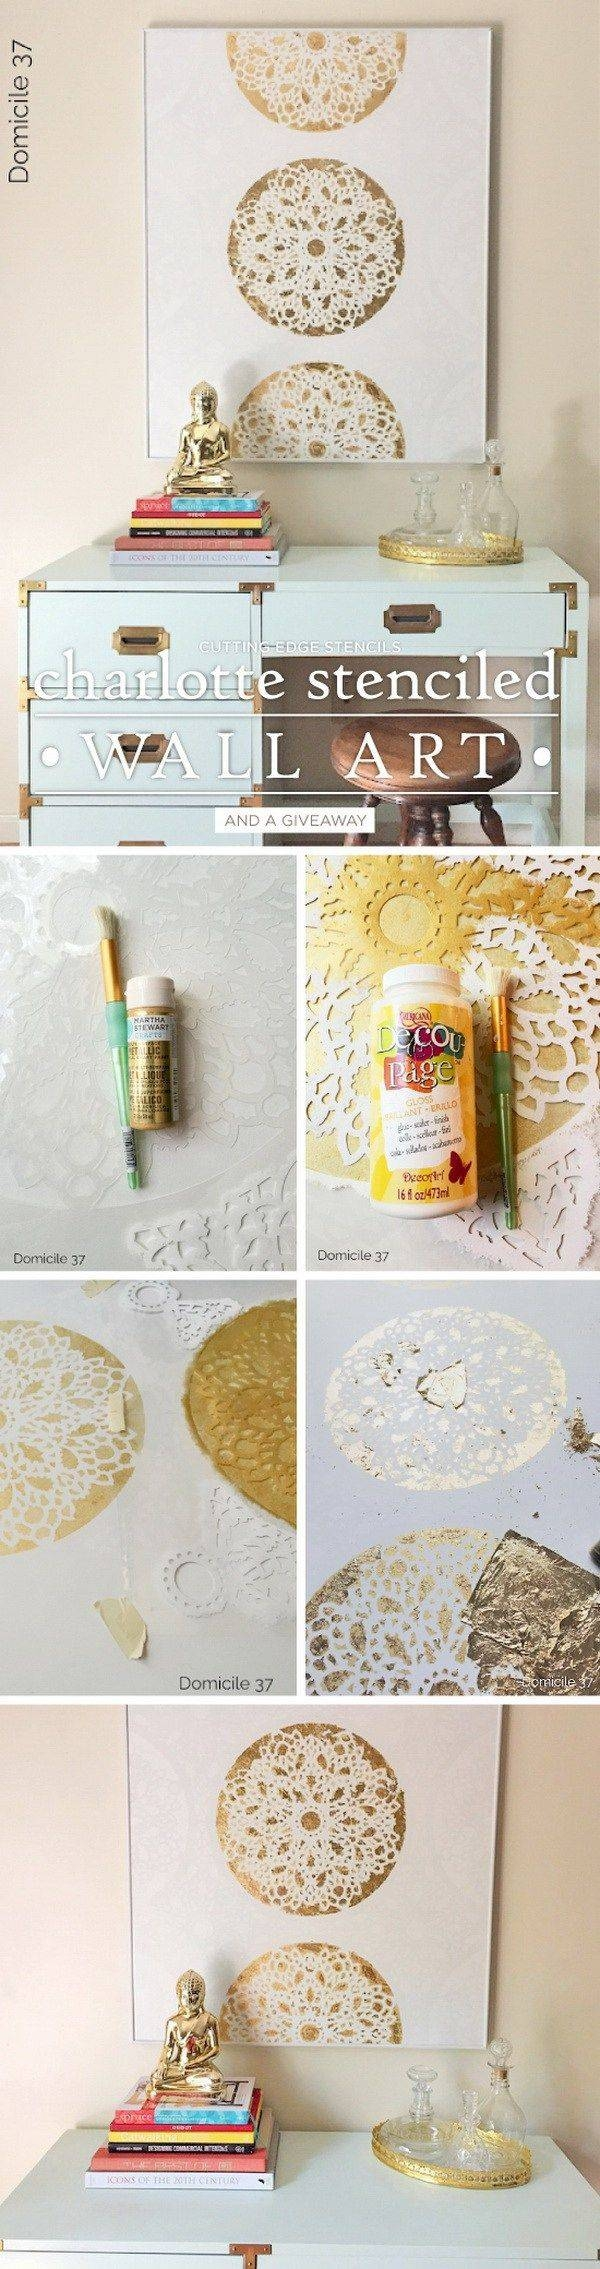 25+ Unique Fabric Wall Art Ideas On Pinterest | Scrapbook Paper With Most Popular Pinterest Diy Wall Art (View 14 of 25)